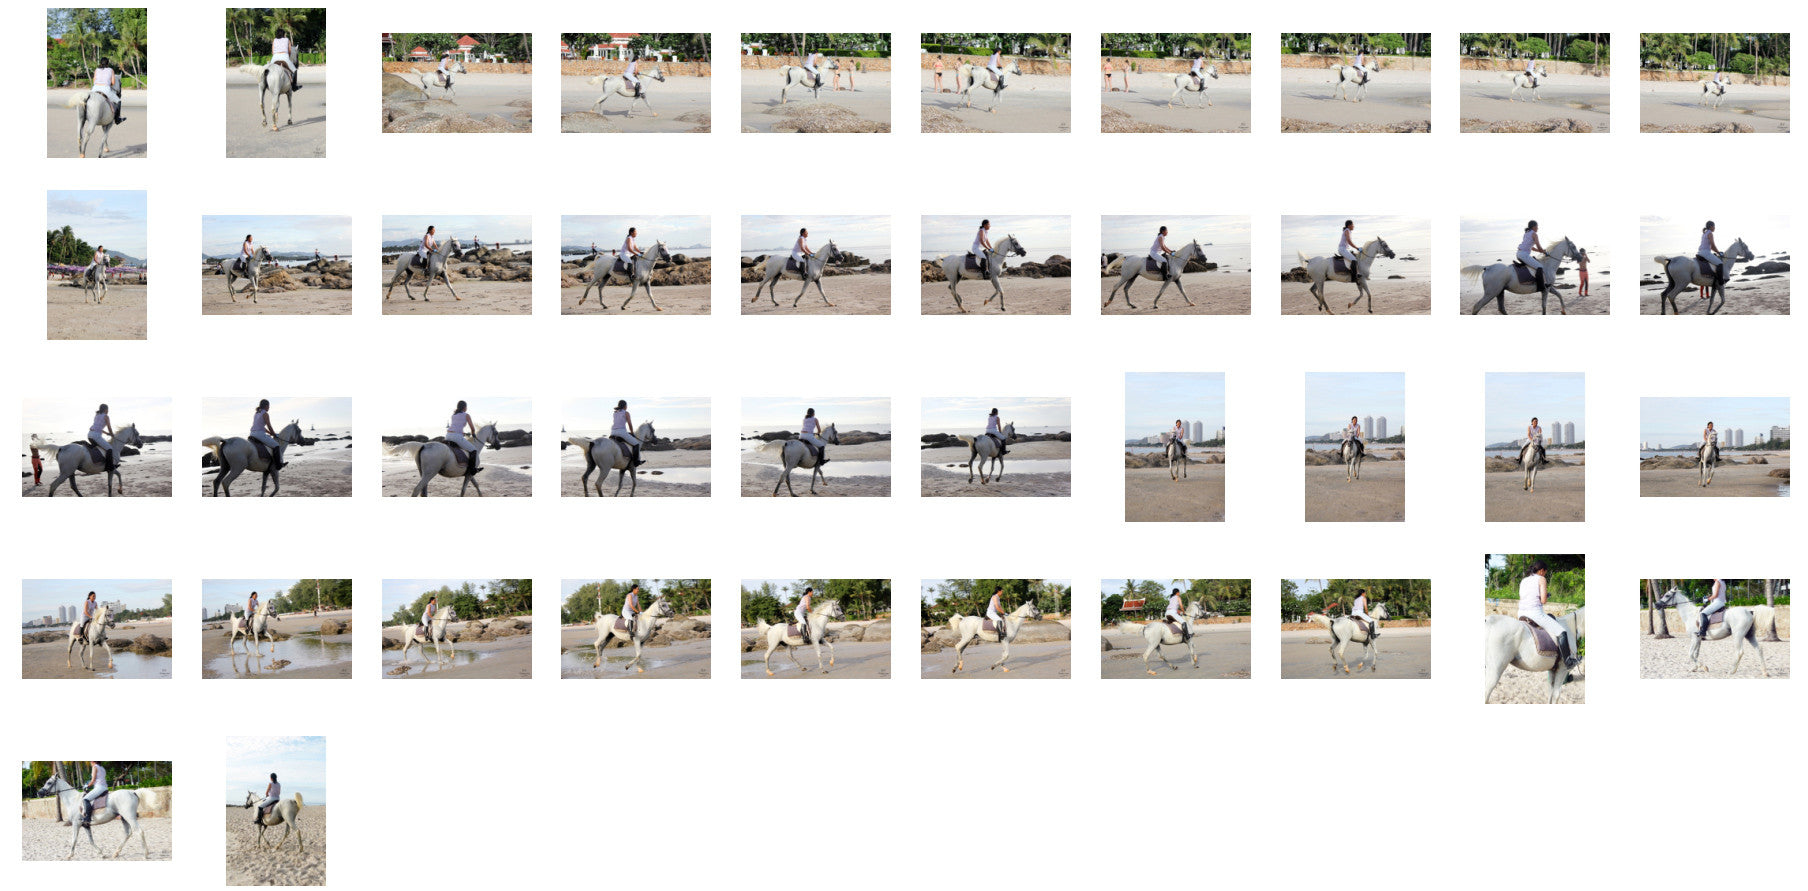 Nam in Jodhpurs Riding with Saddle on White Arabian Horse, Part 2 - Riding.Vision